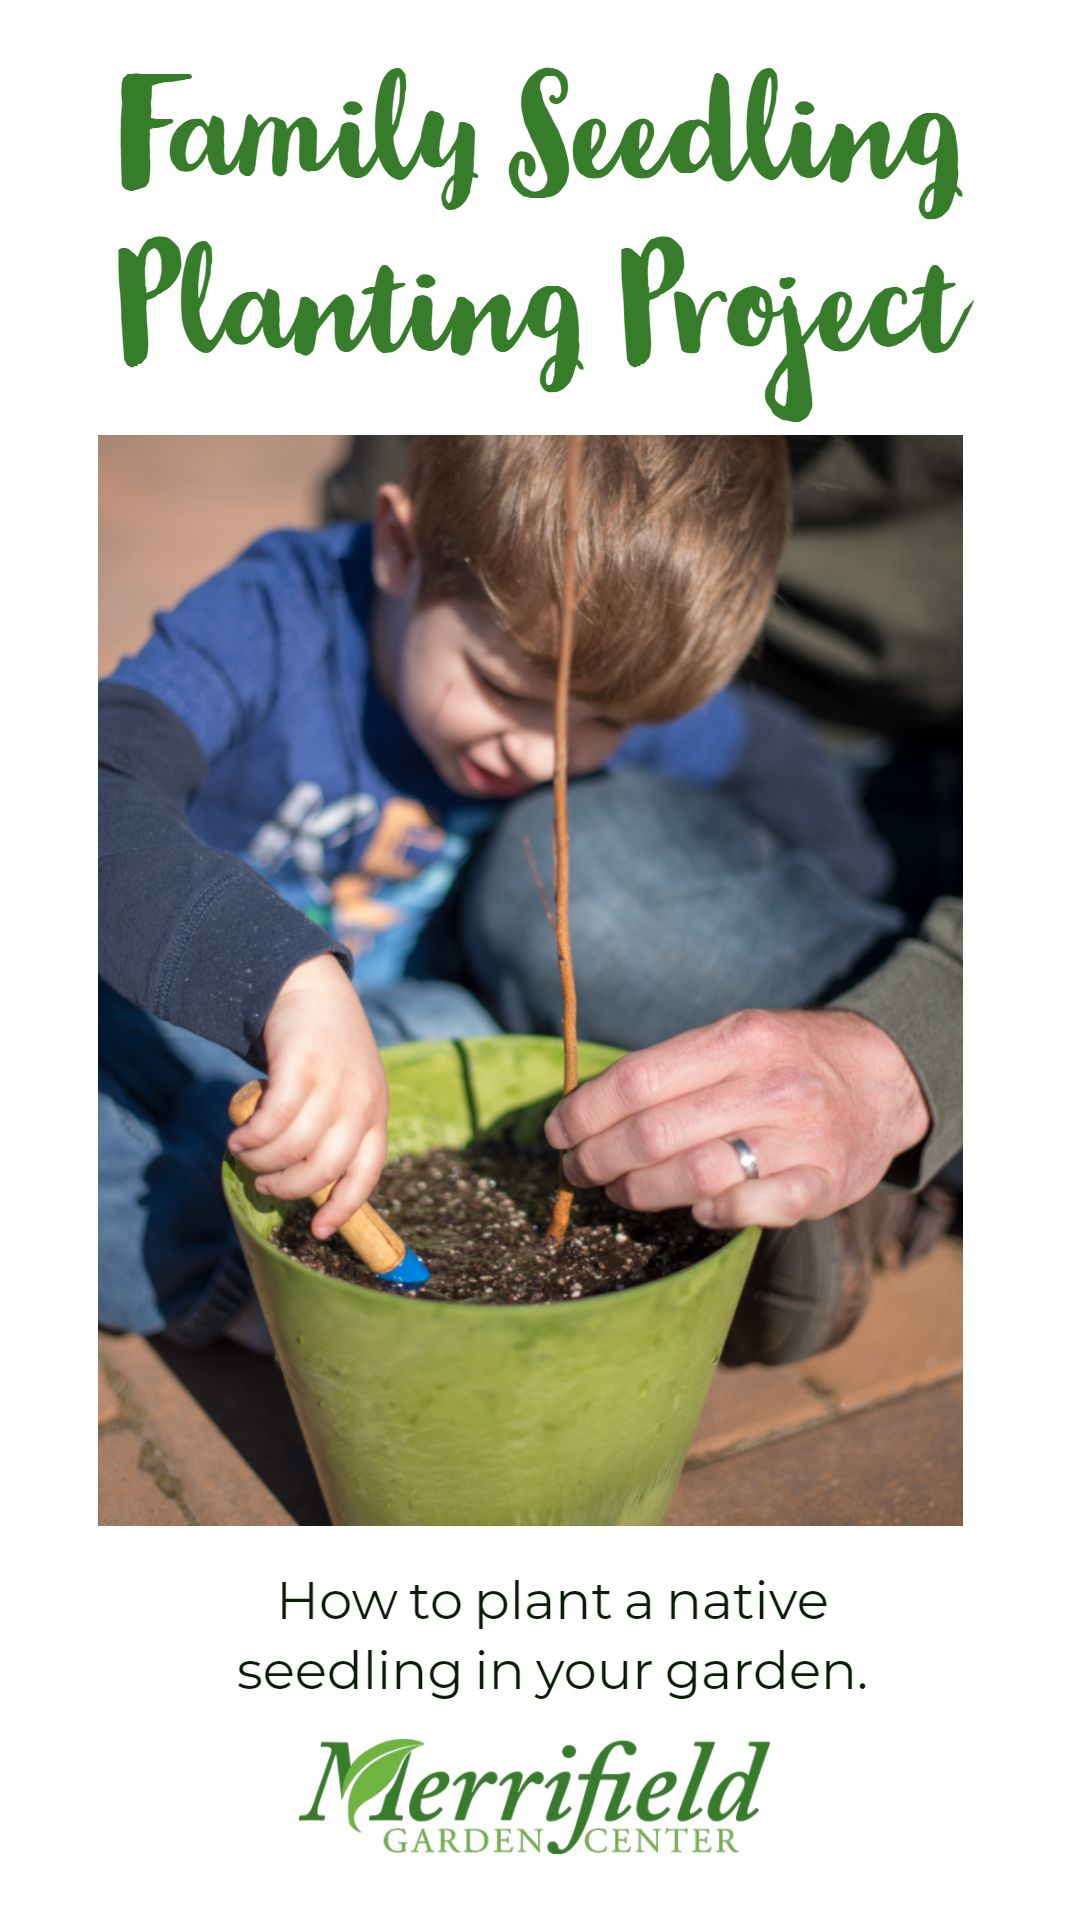 Plant a native tree seedling with your family for Arbor